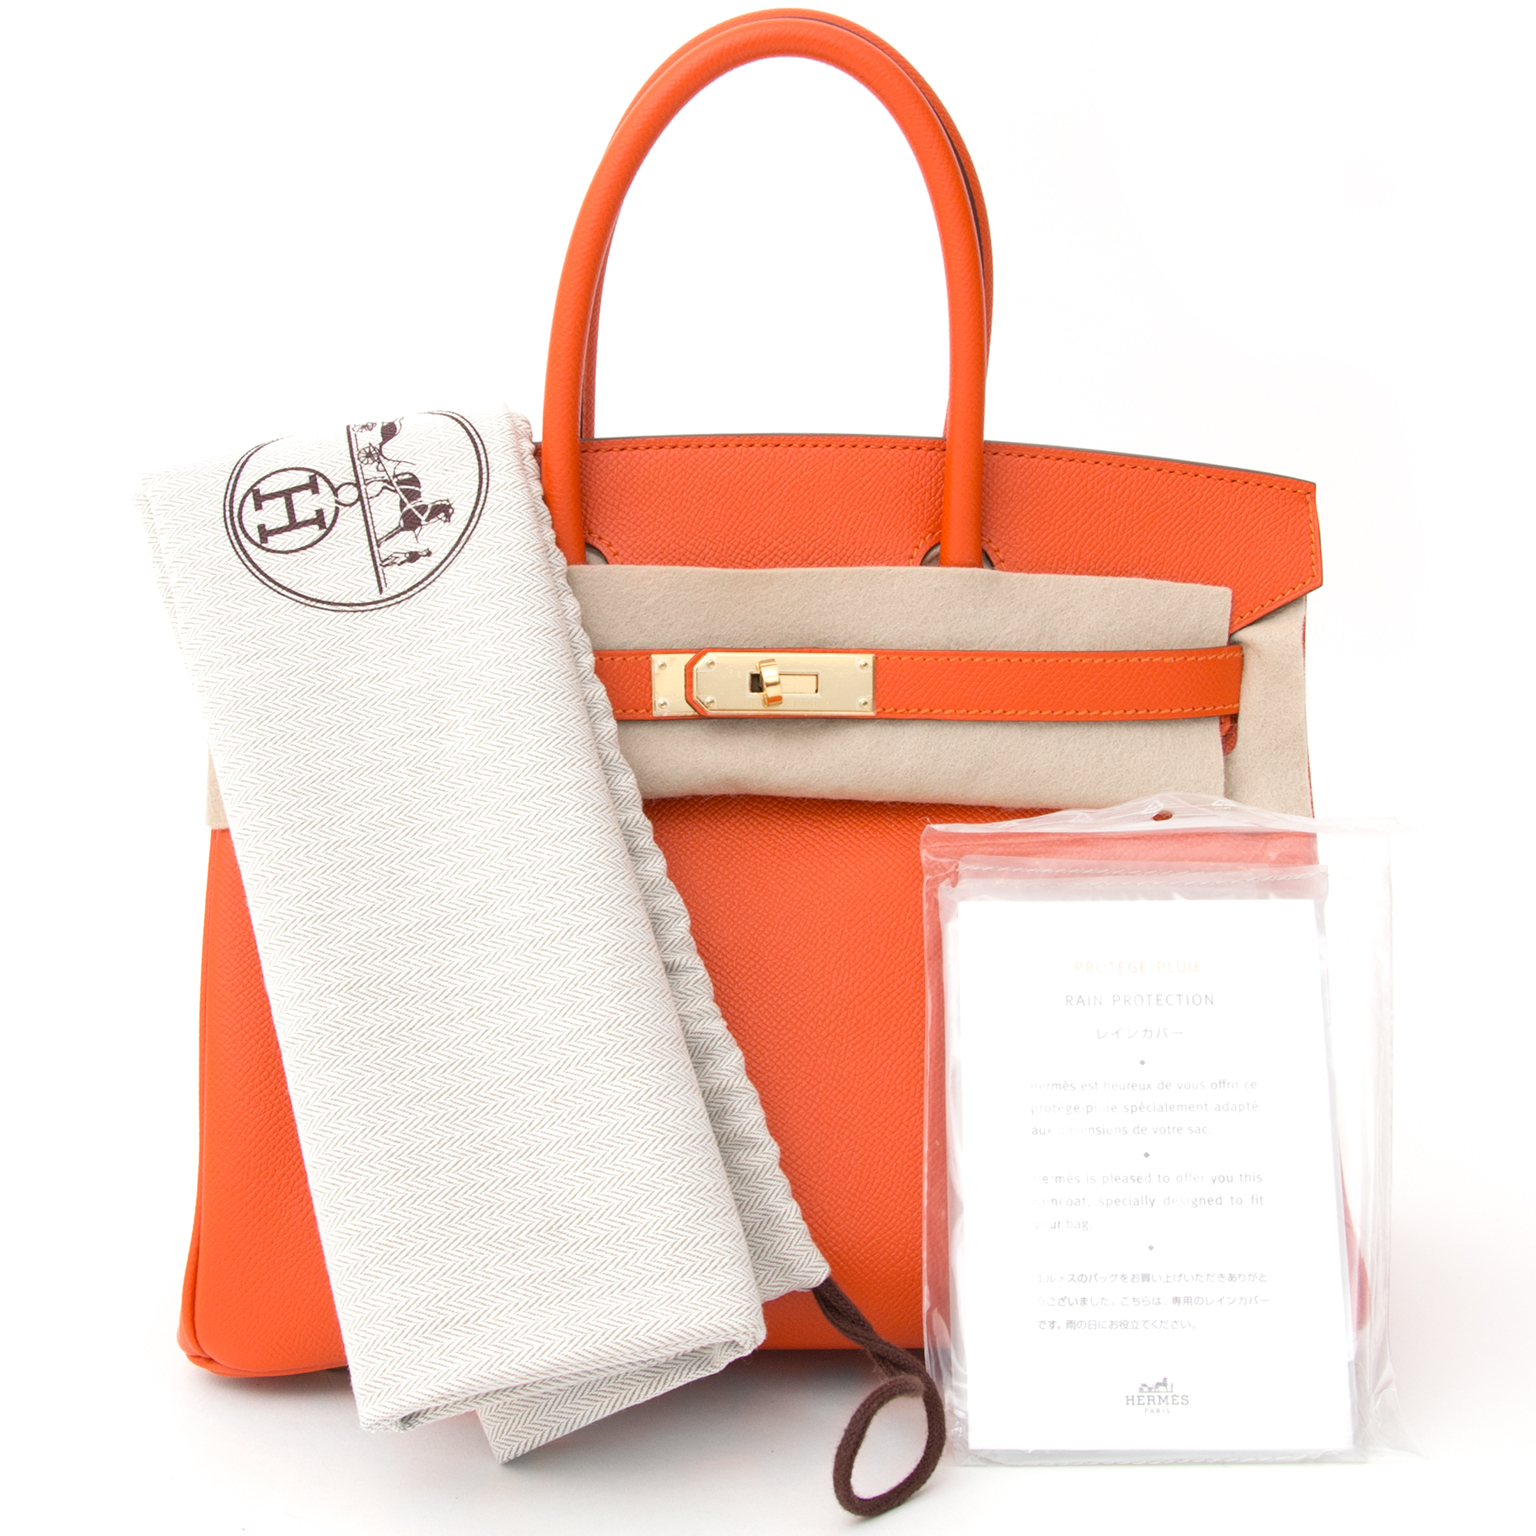 sac hermes birkin orange